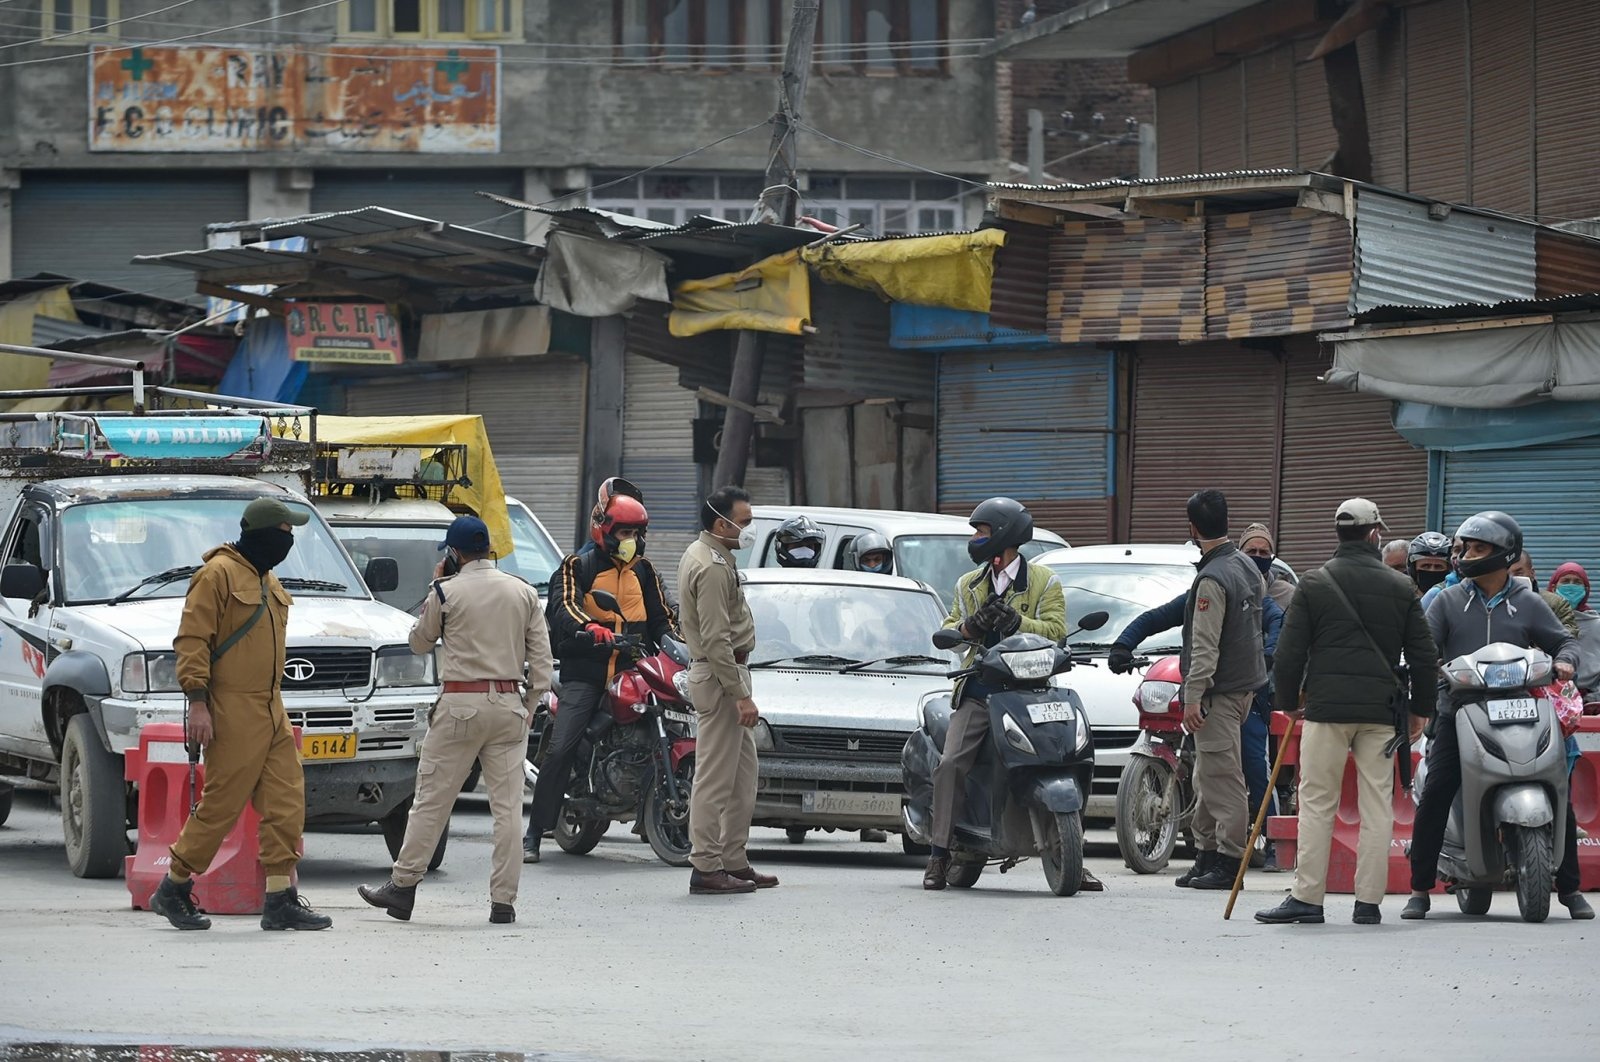 Indian police stops vehicles at a checkpoint during a government-imposed nationwide lockdown as a preventive measure against the COVID-19 coronavirus, in Srinagar on April 20, 2020. (AFP Photo)